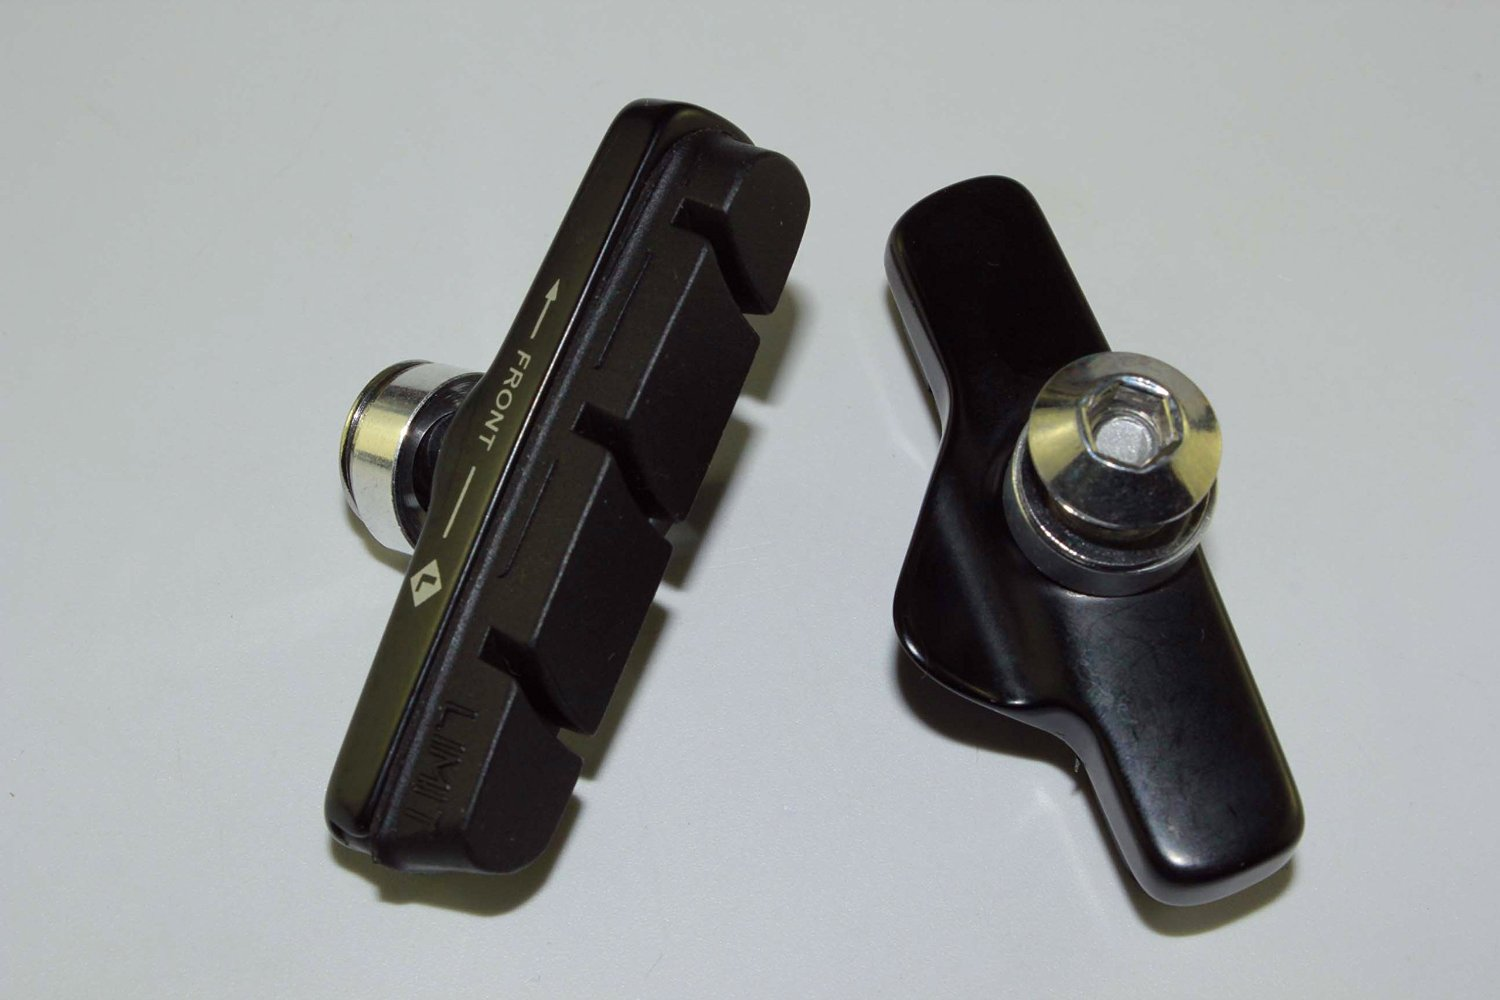 Rubber Brake Pad Inserts for Campagnolo Record /& Chorus Road Brake Shoes Campag